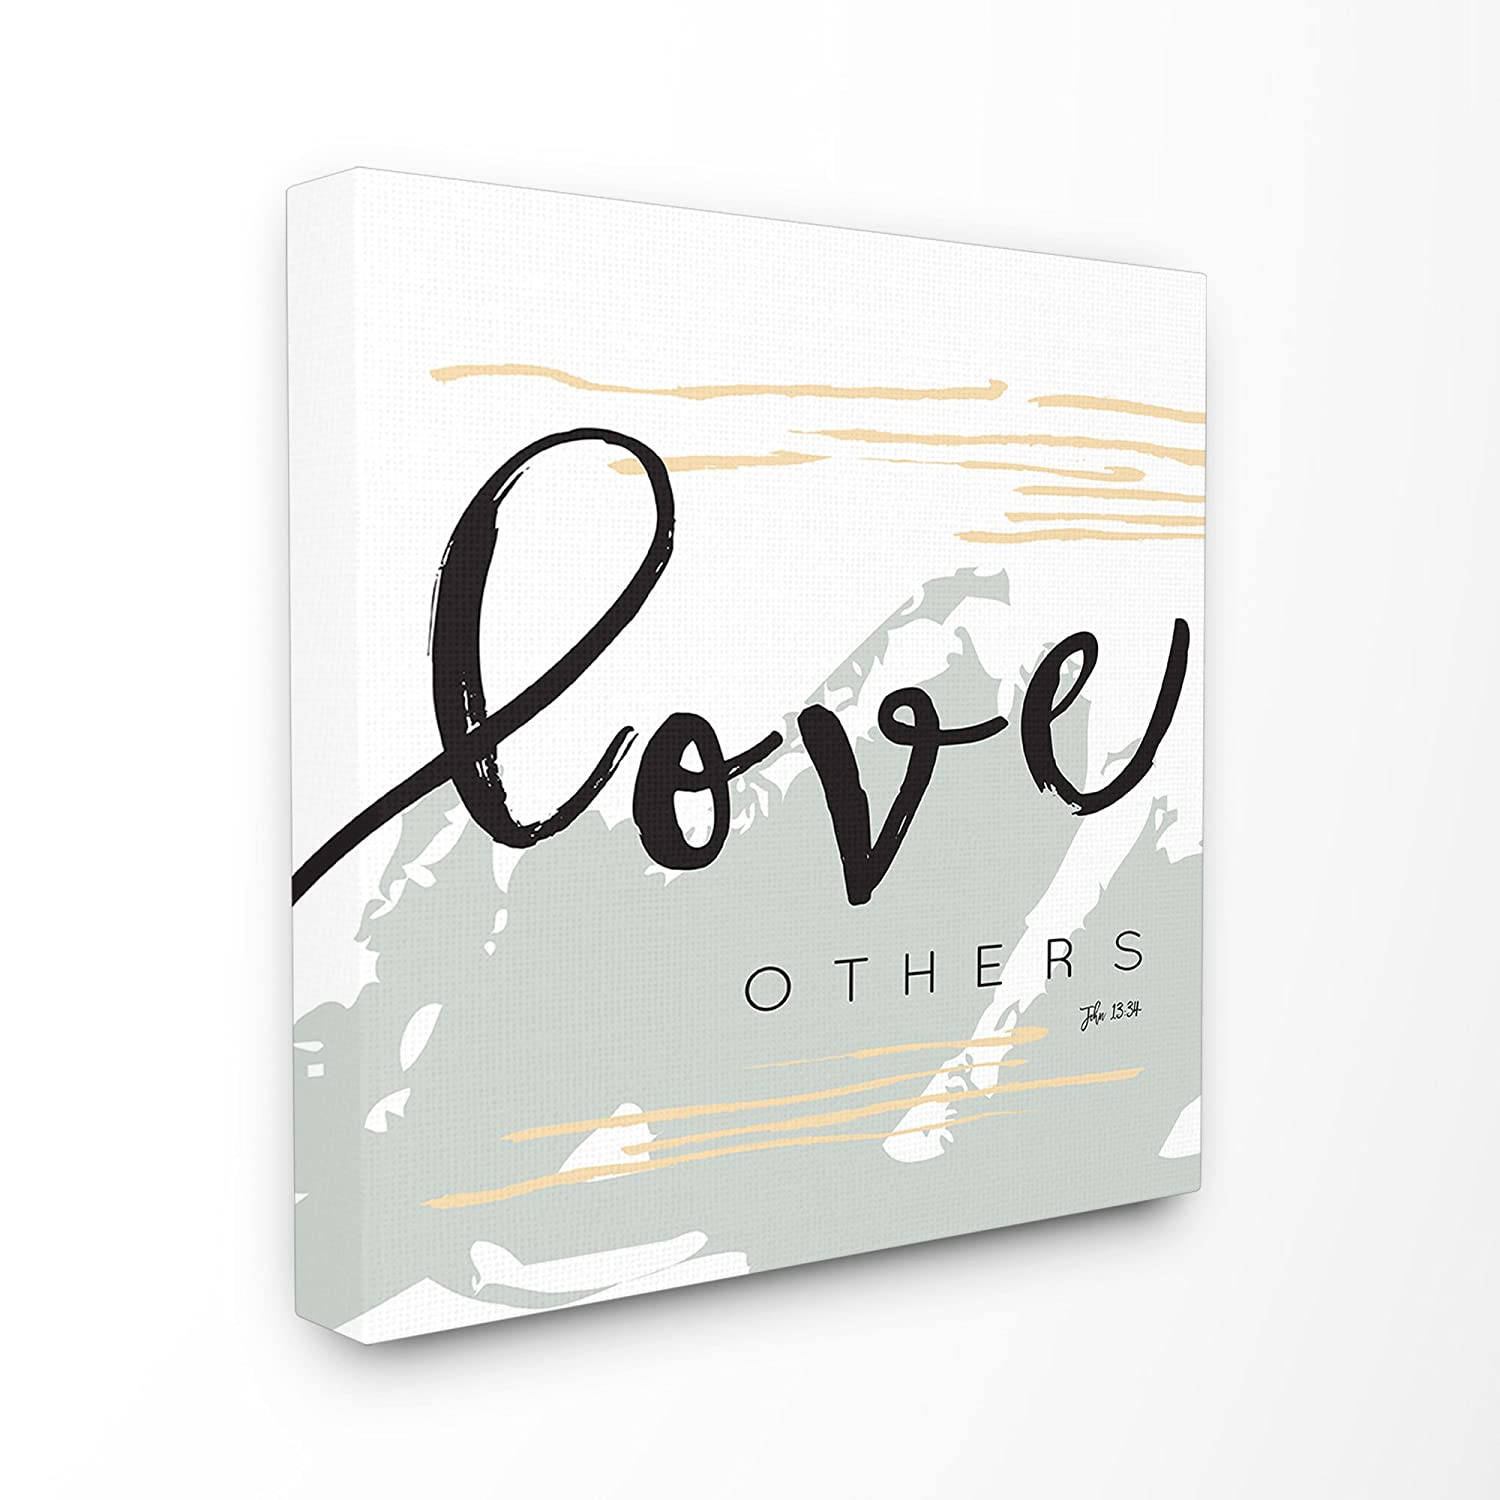 24 x 1.5 x 24 Proudly Made in USA Stupell Home D/écor Love Others John 13:34 Oversized Stretched Canvas Wall Art by EtchLife